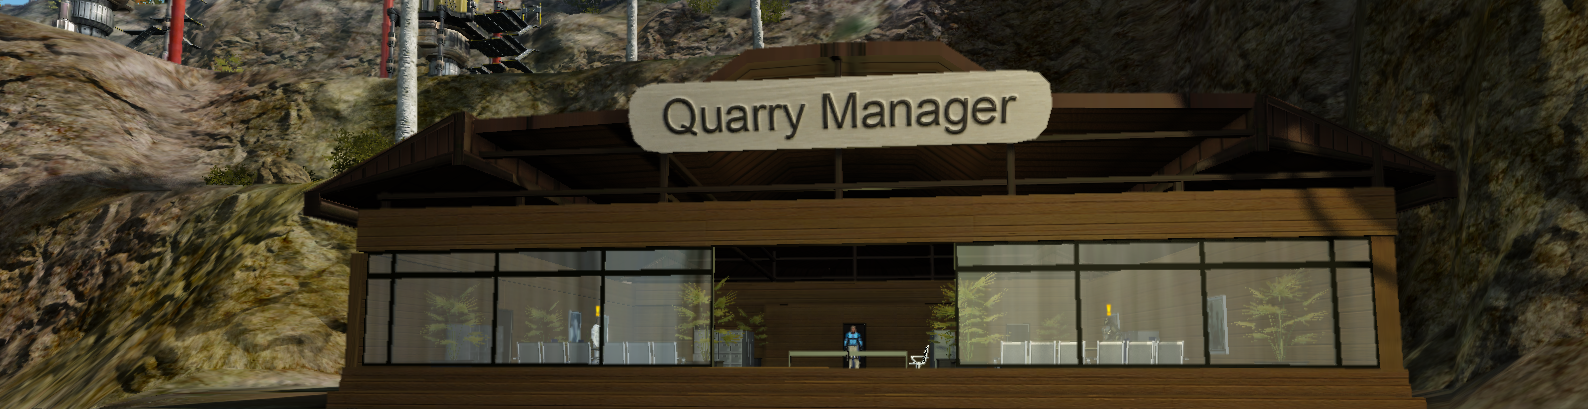 Quarry manager.PNG